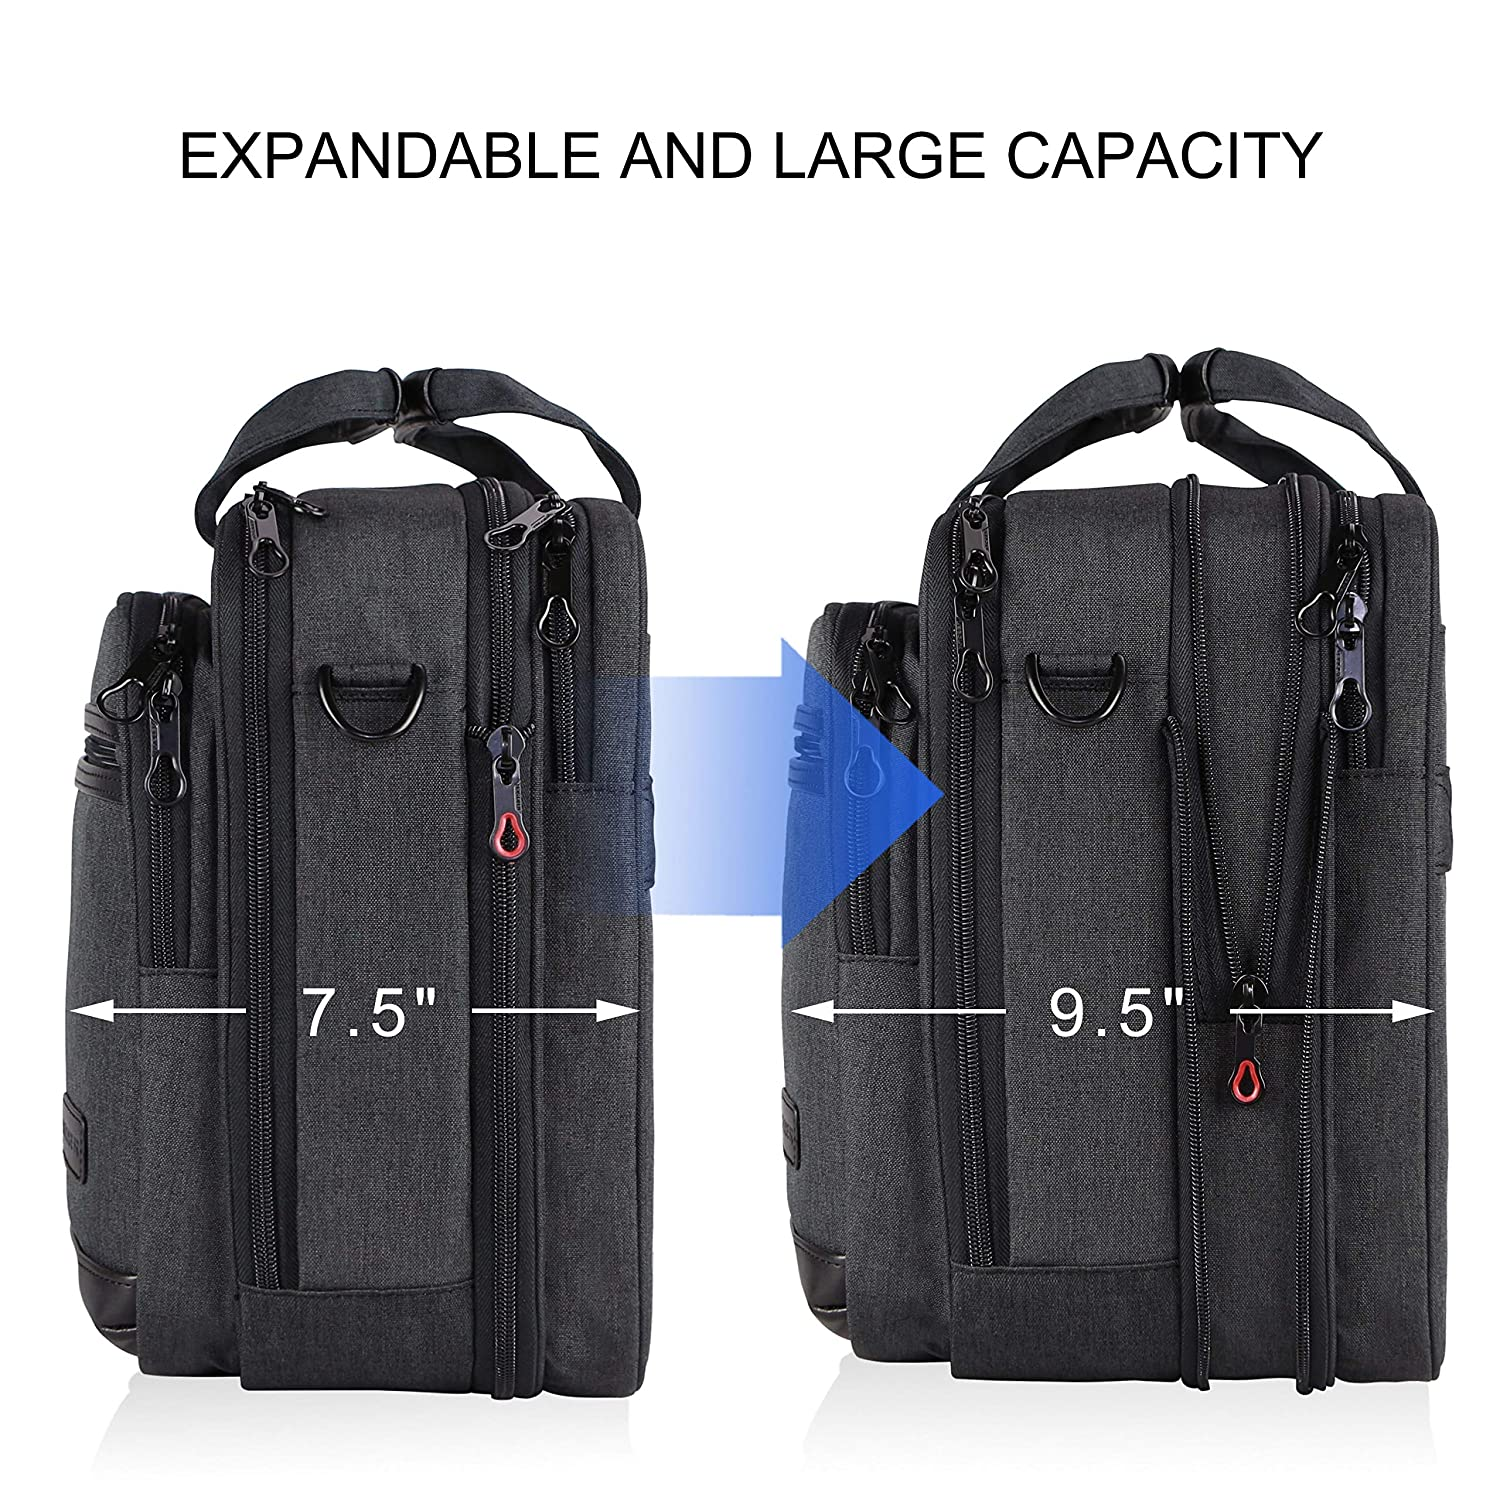 "KROSER 18/"" Laptop Bag Stylish Laptop Briefcase Fits Up to 17.3 Inch Expandable Water-Repellent Shoulder Messenger Bag Computer Bag with RFID Pockets for Business//Travel//School//College//Men//Women-Black"